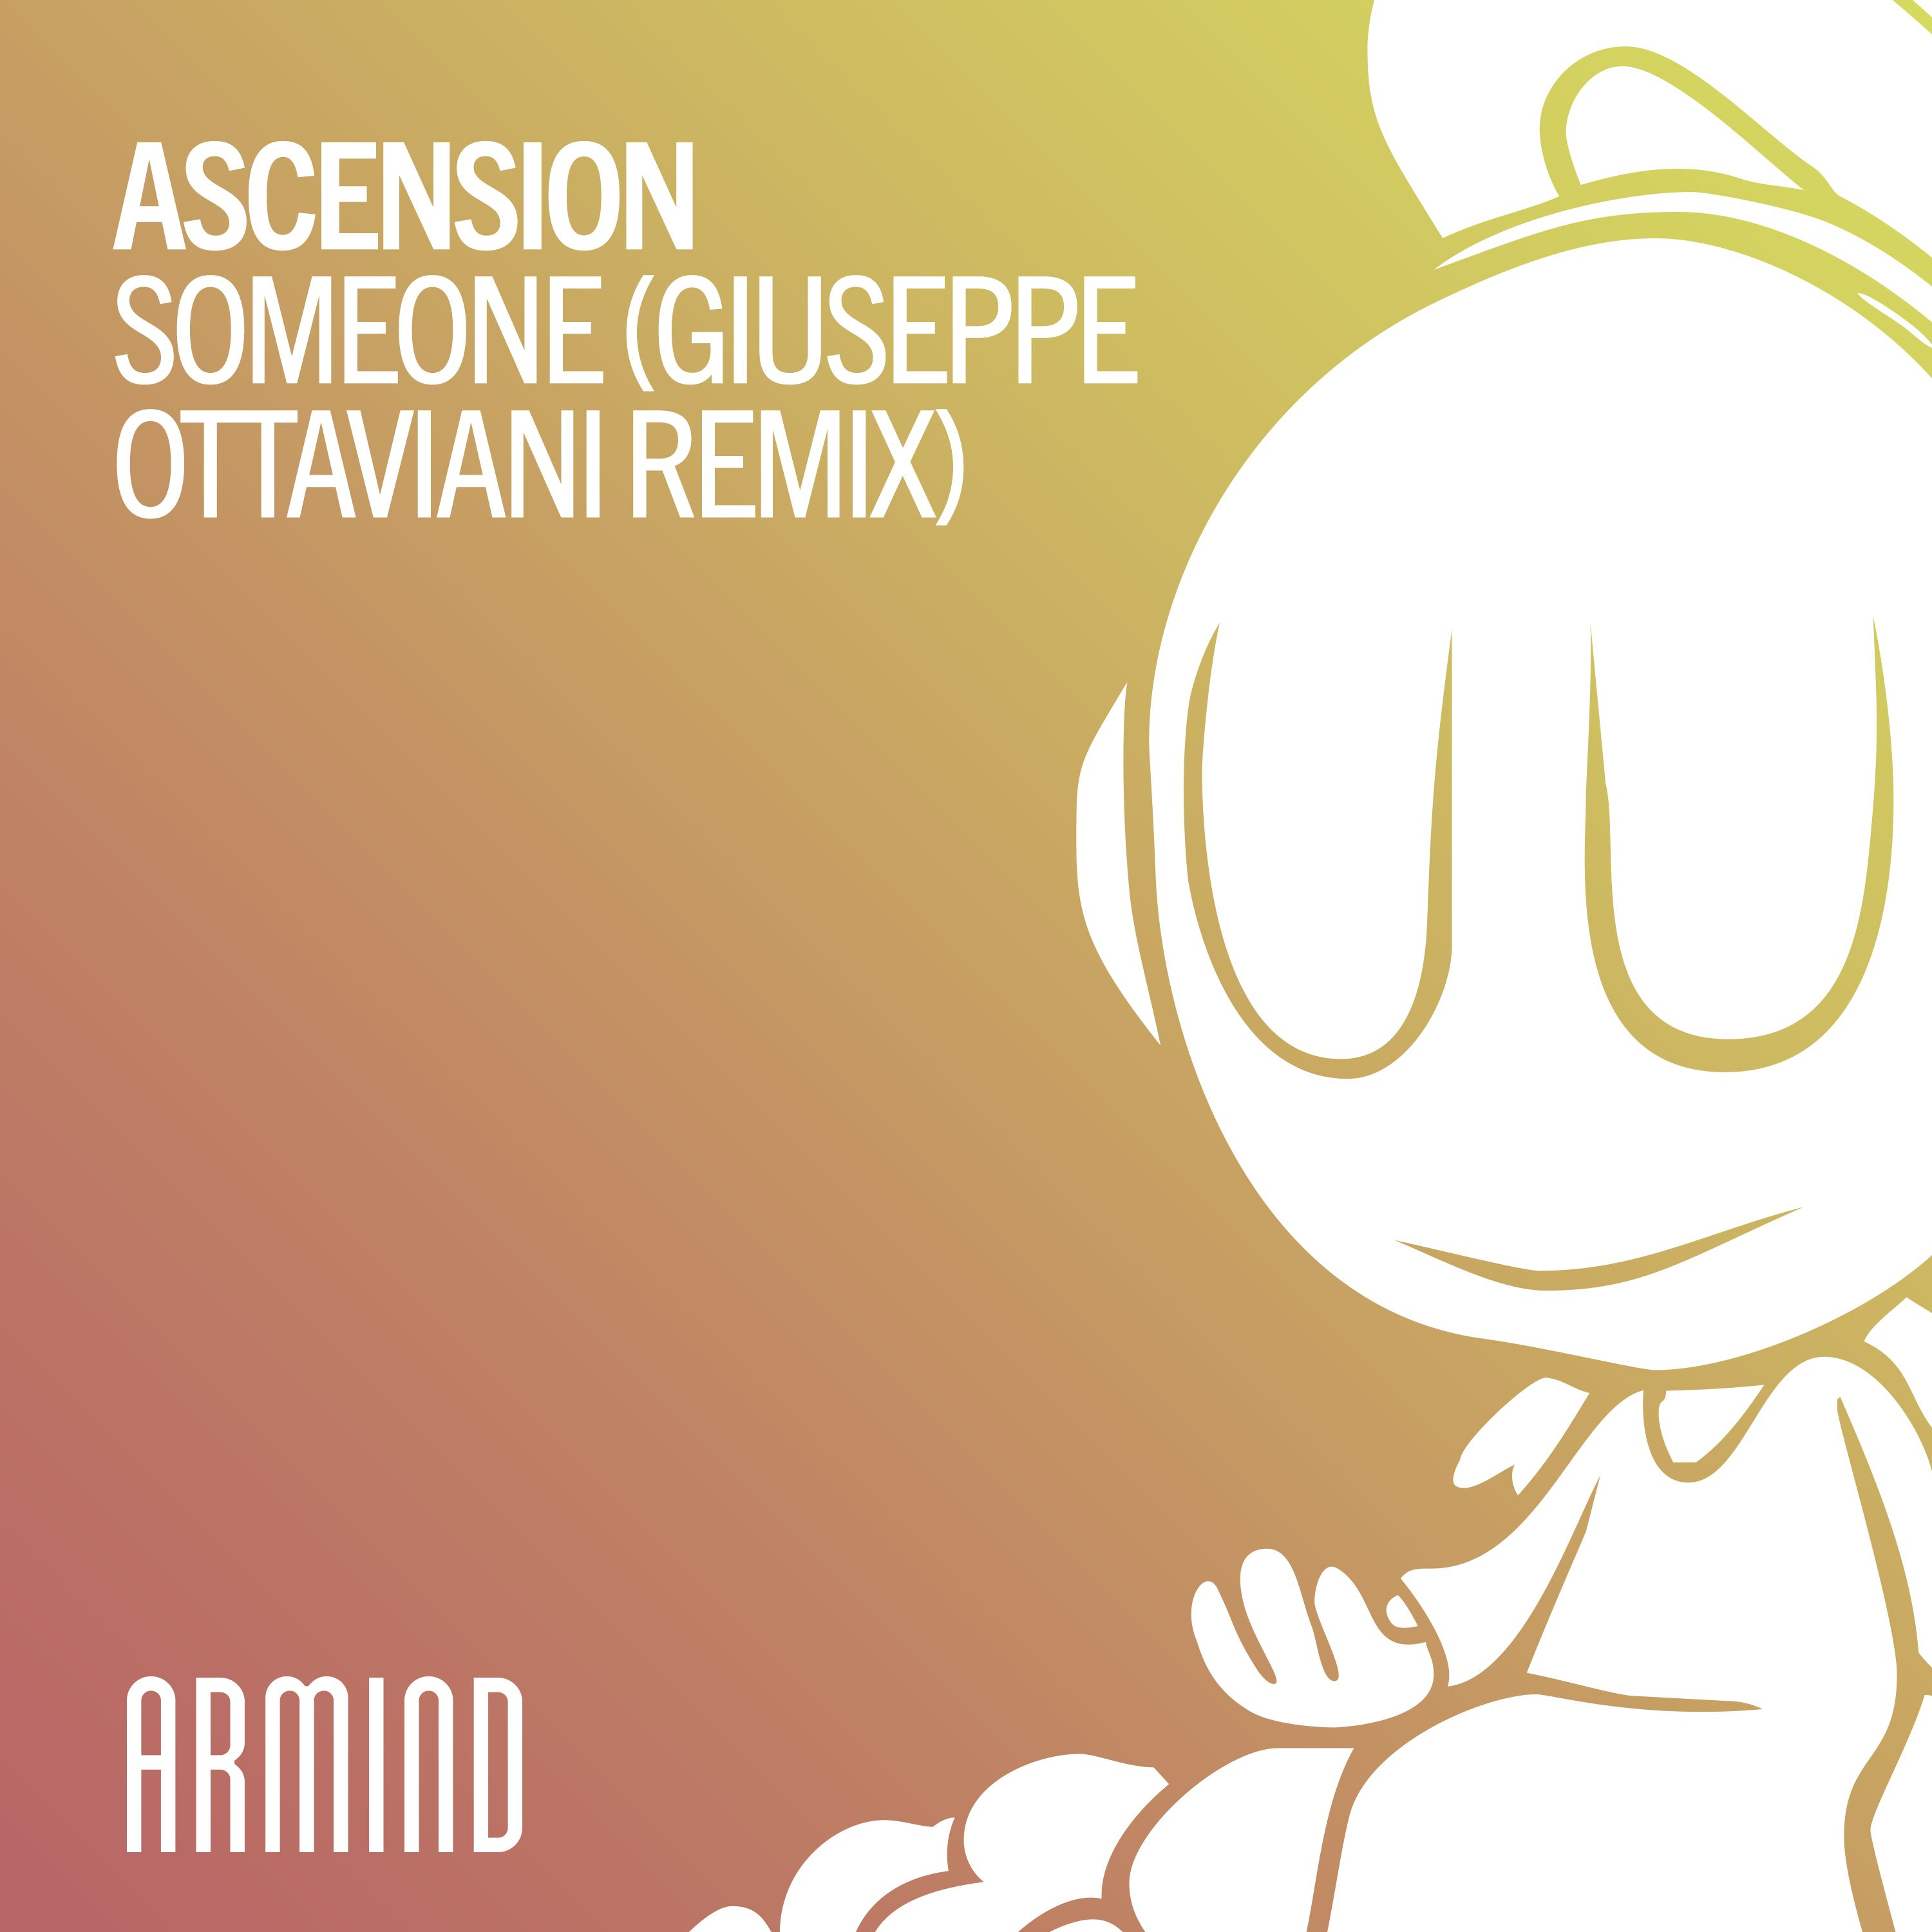 Ascension – Someone (Giuseppe Ottaviani Remix) [Armind]